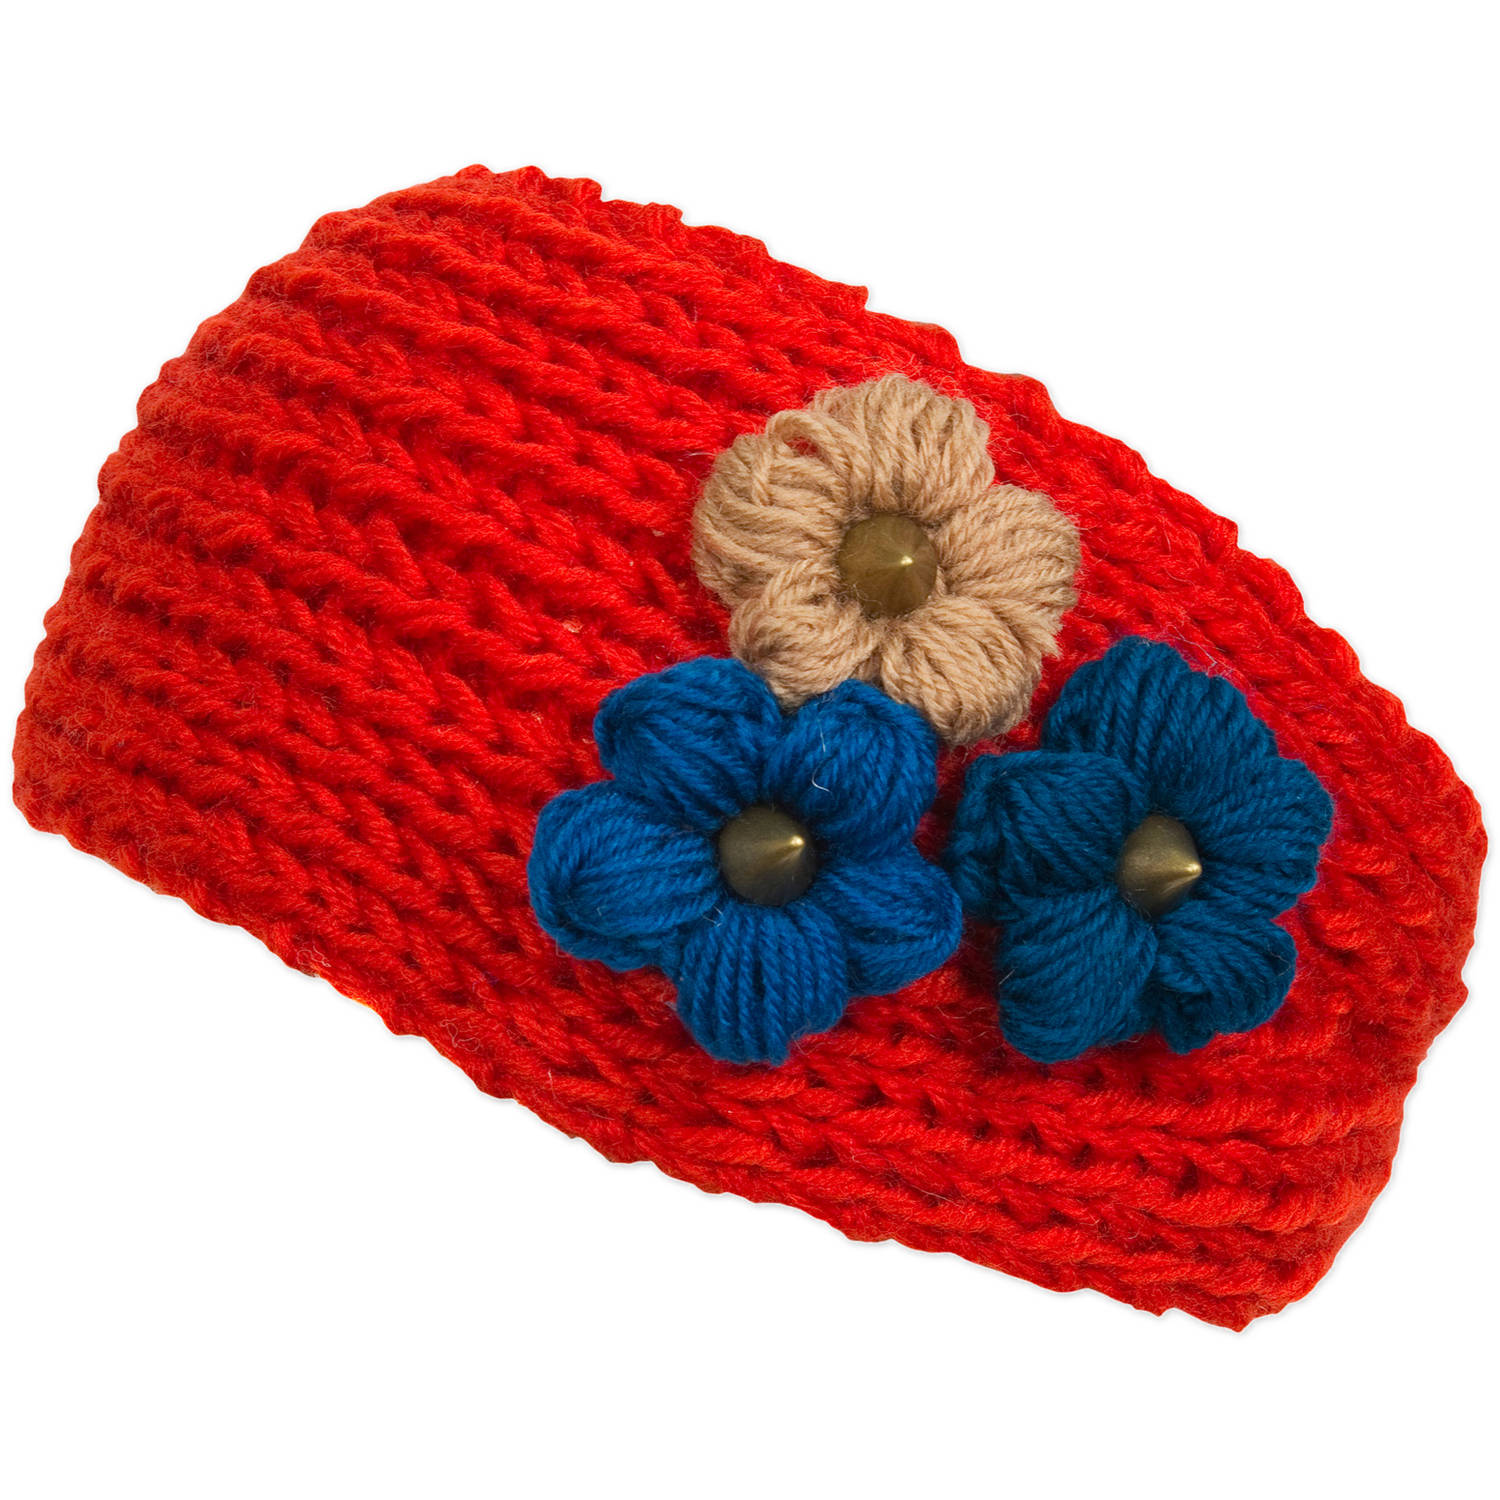 Magid Headwrap with Tri Color Flowers, Red